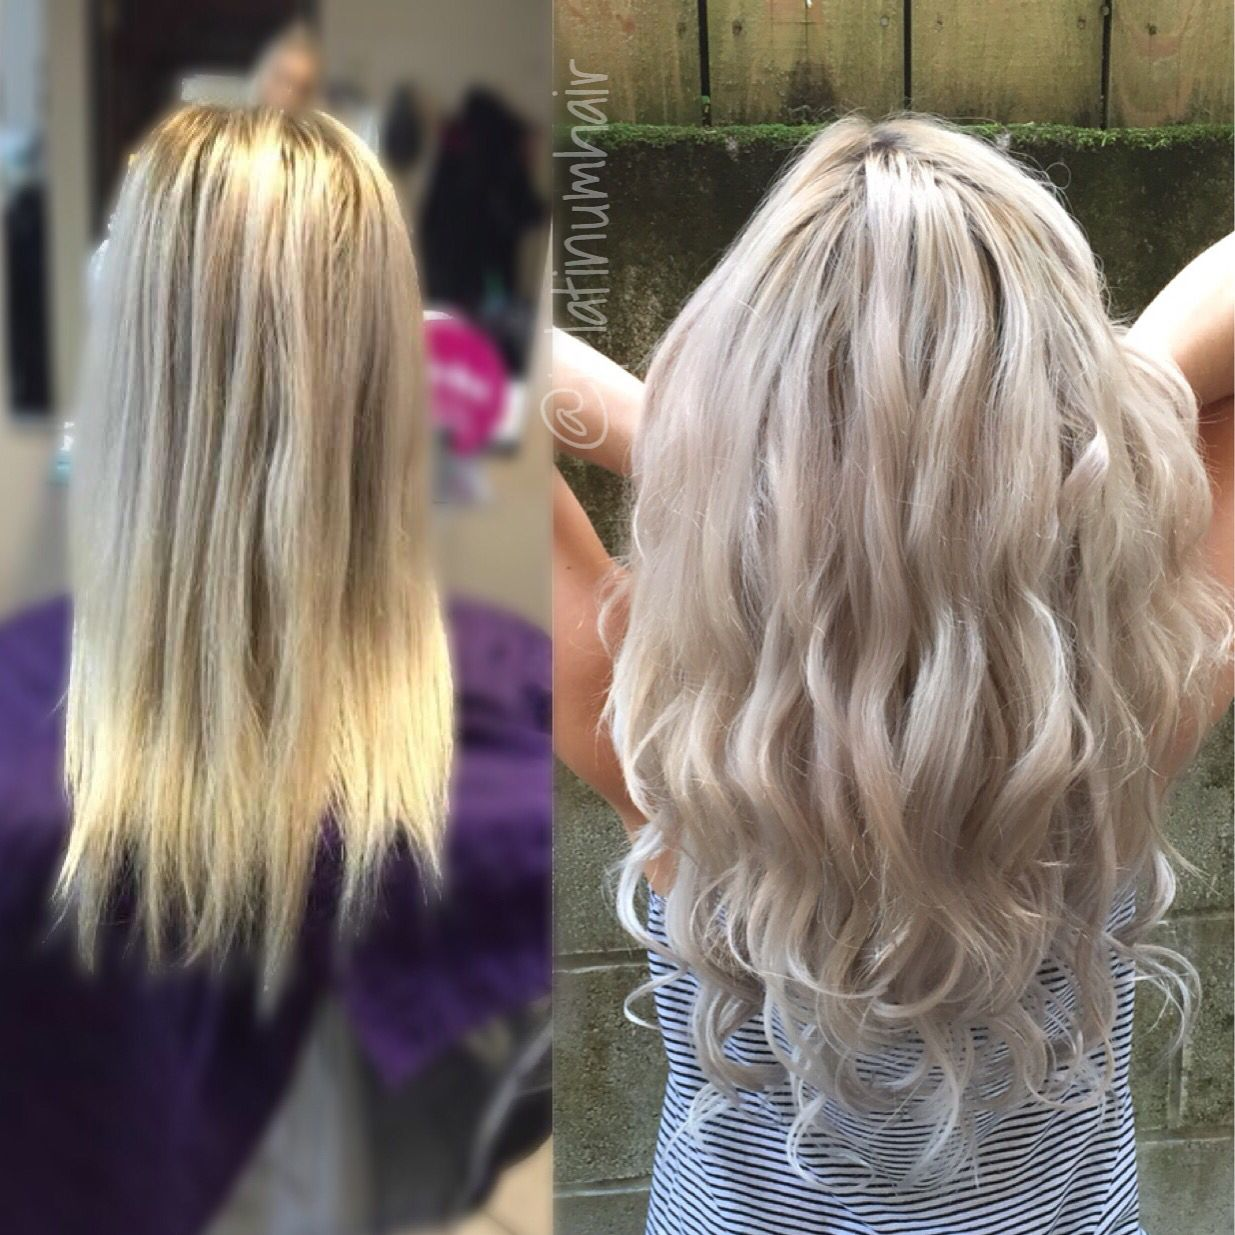 Before And After Dream Catchers Hair Extensions Love This